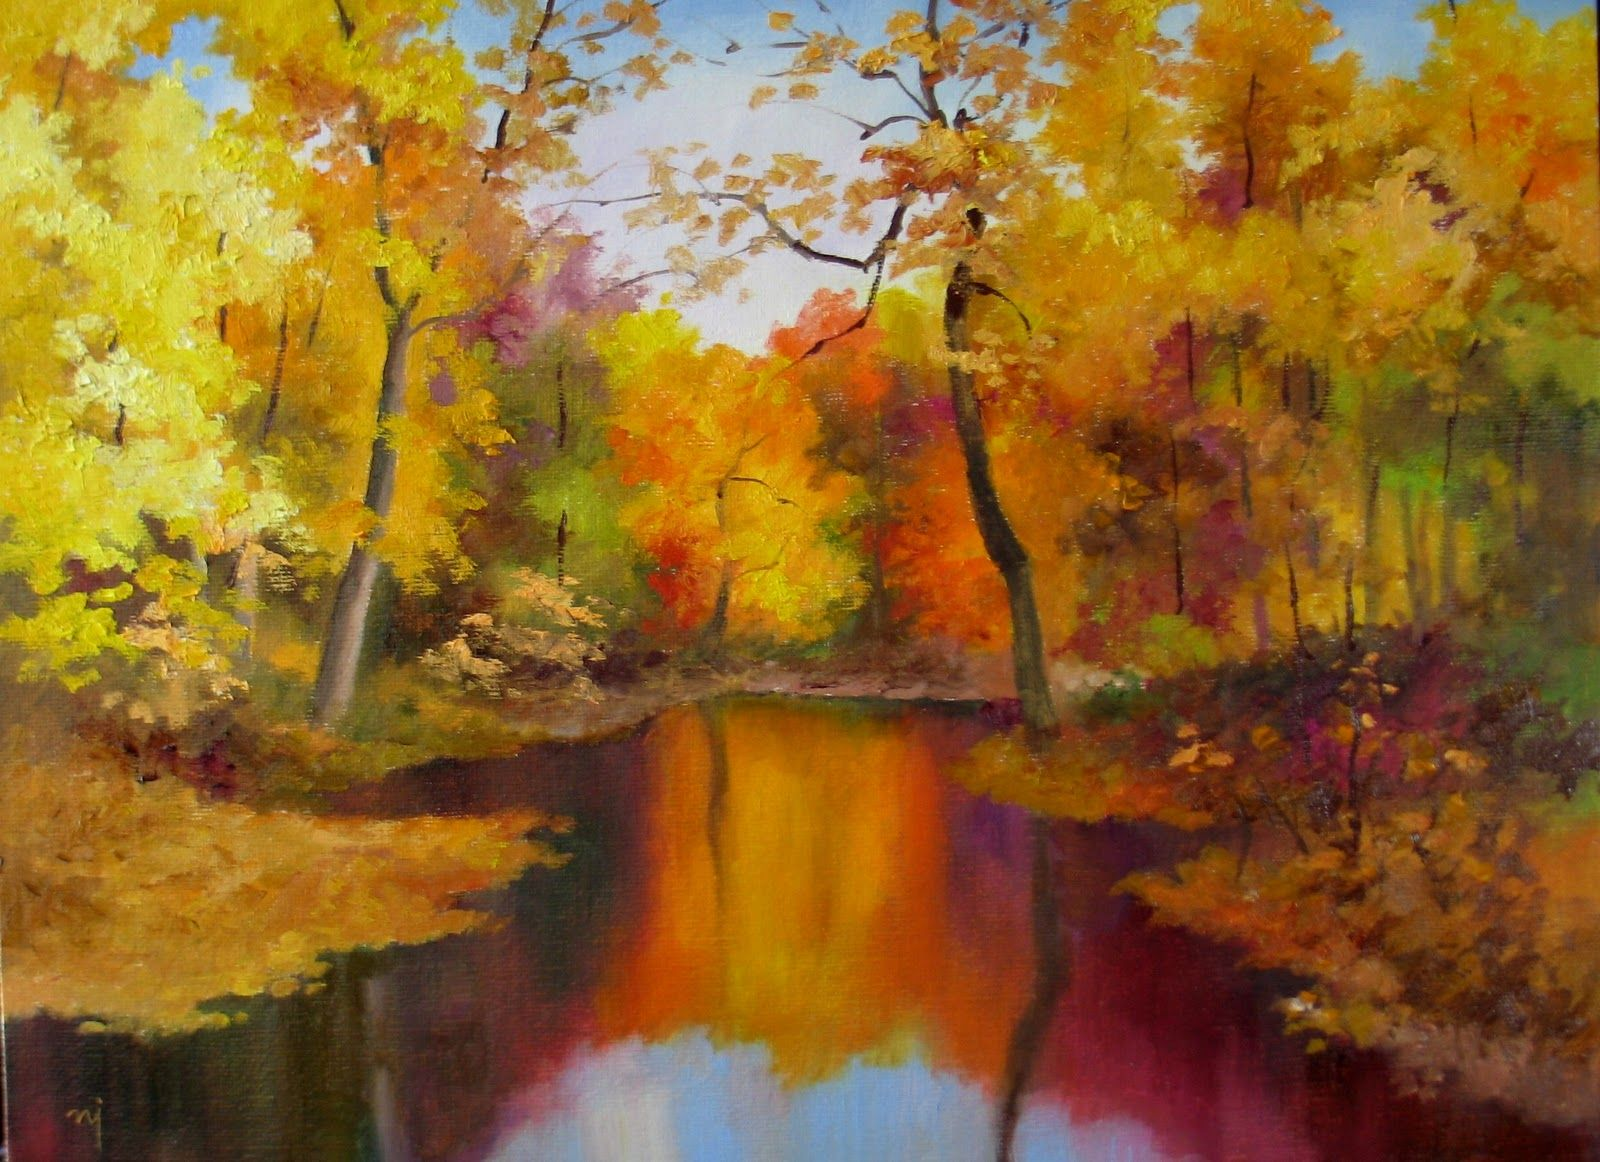 Fall Landscape Paintings | Autumn Landscape 2 - SOLD ...